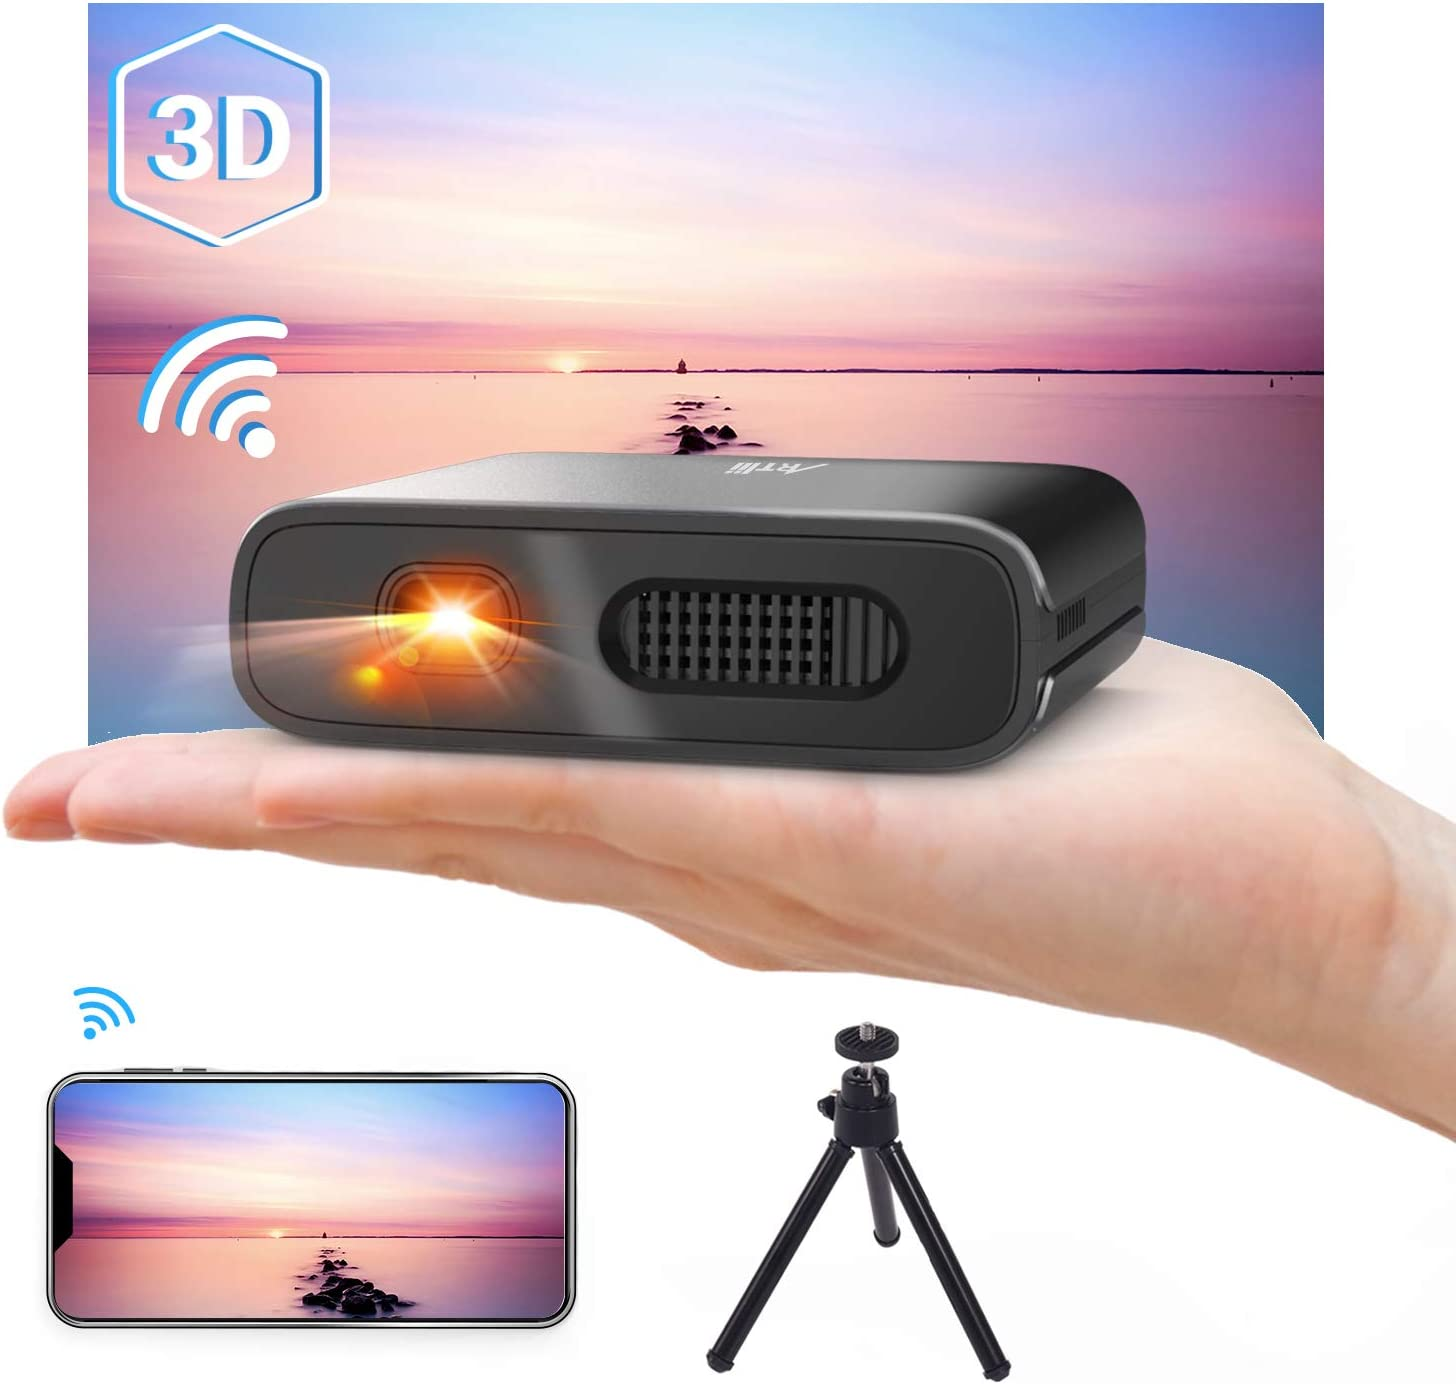 Artlii Mana DLP Video projector with rechargeable battery